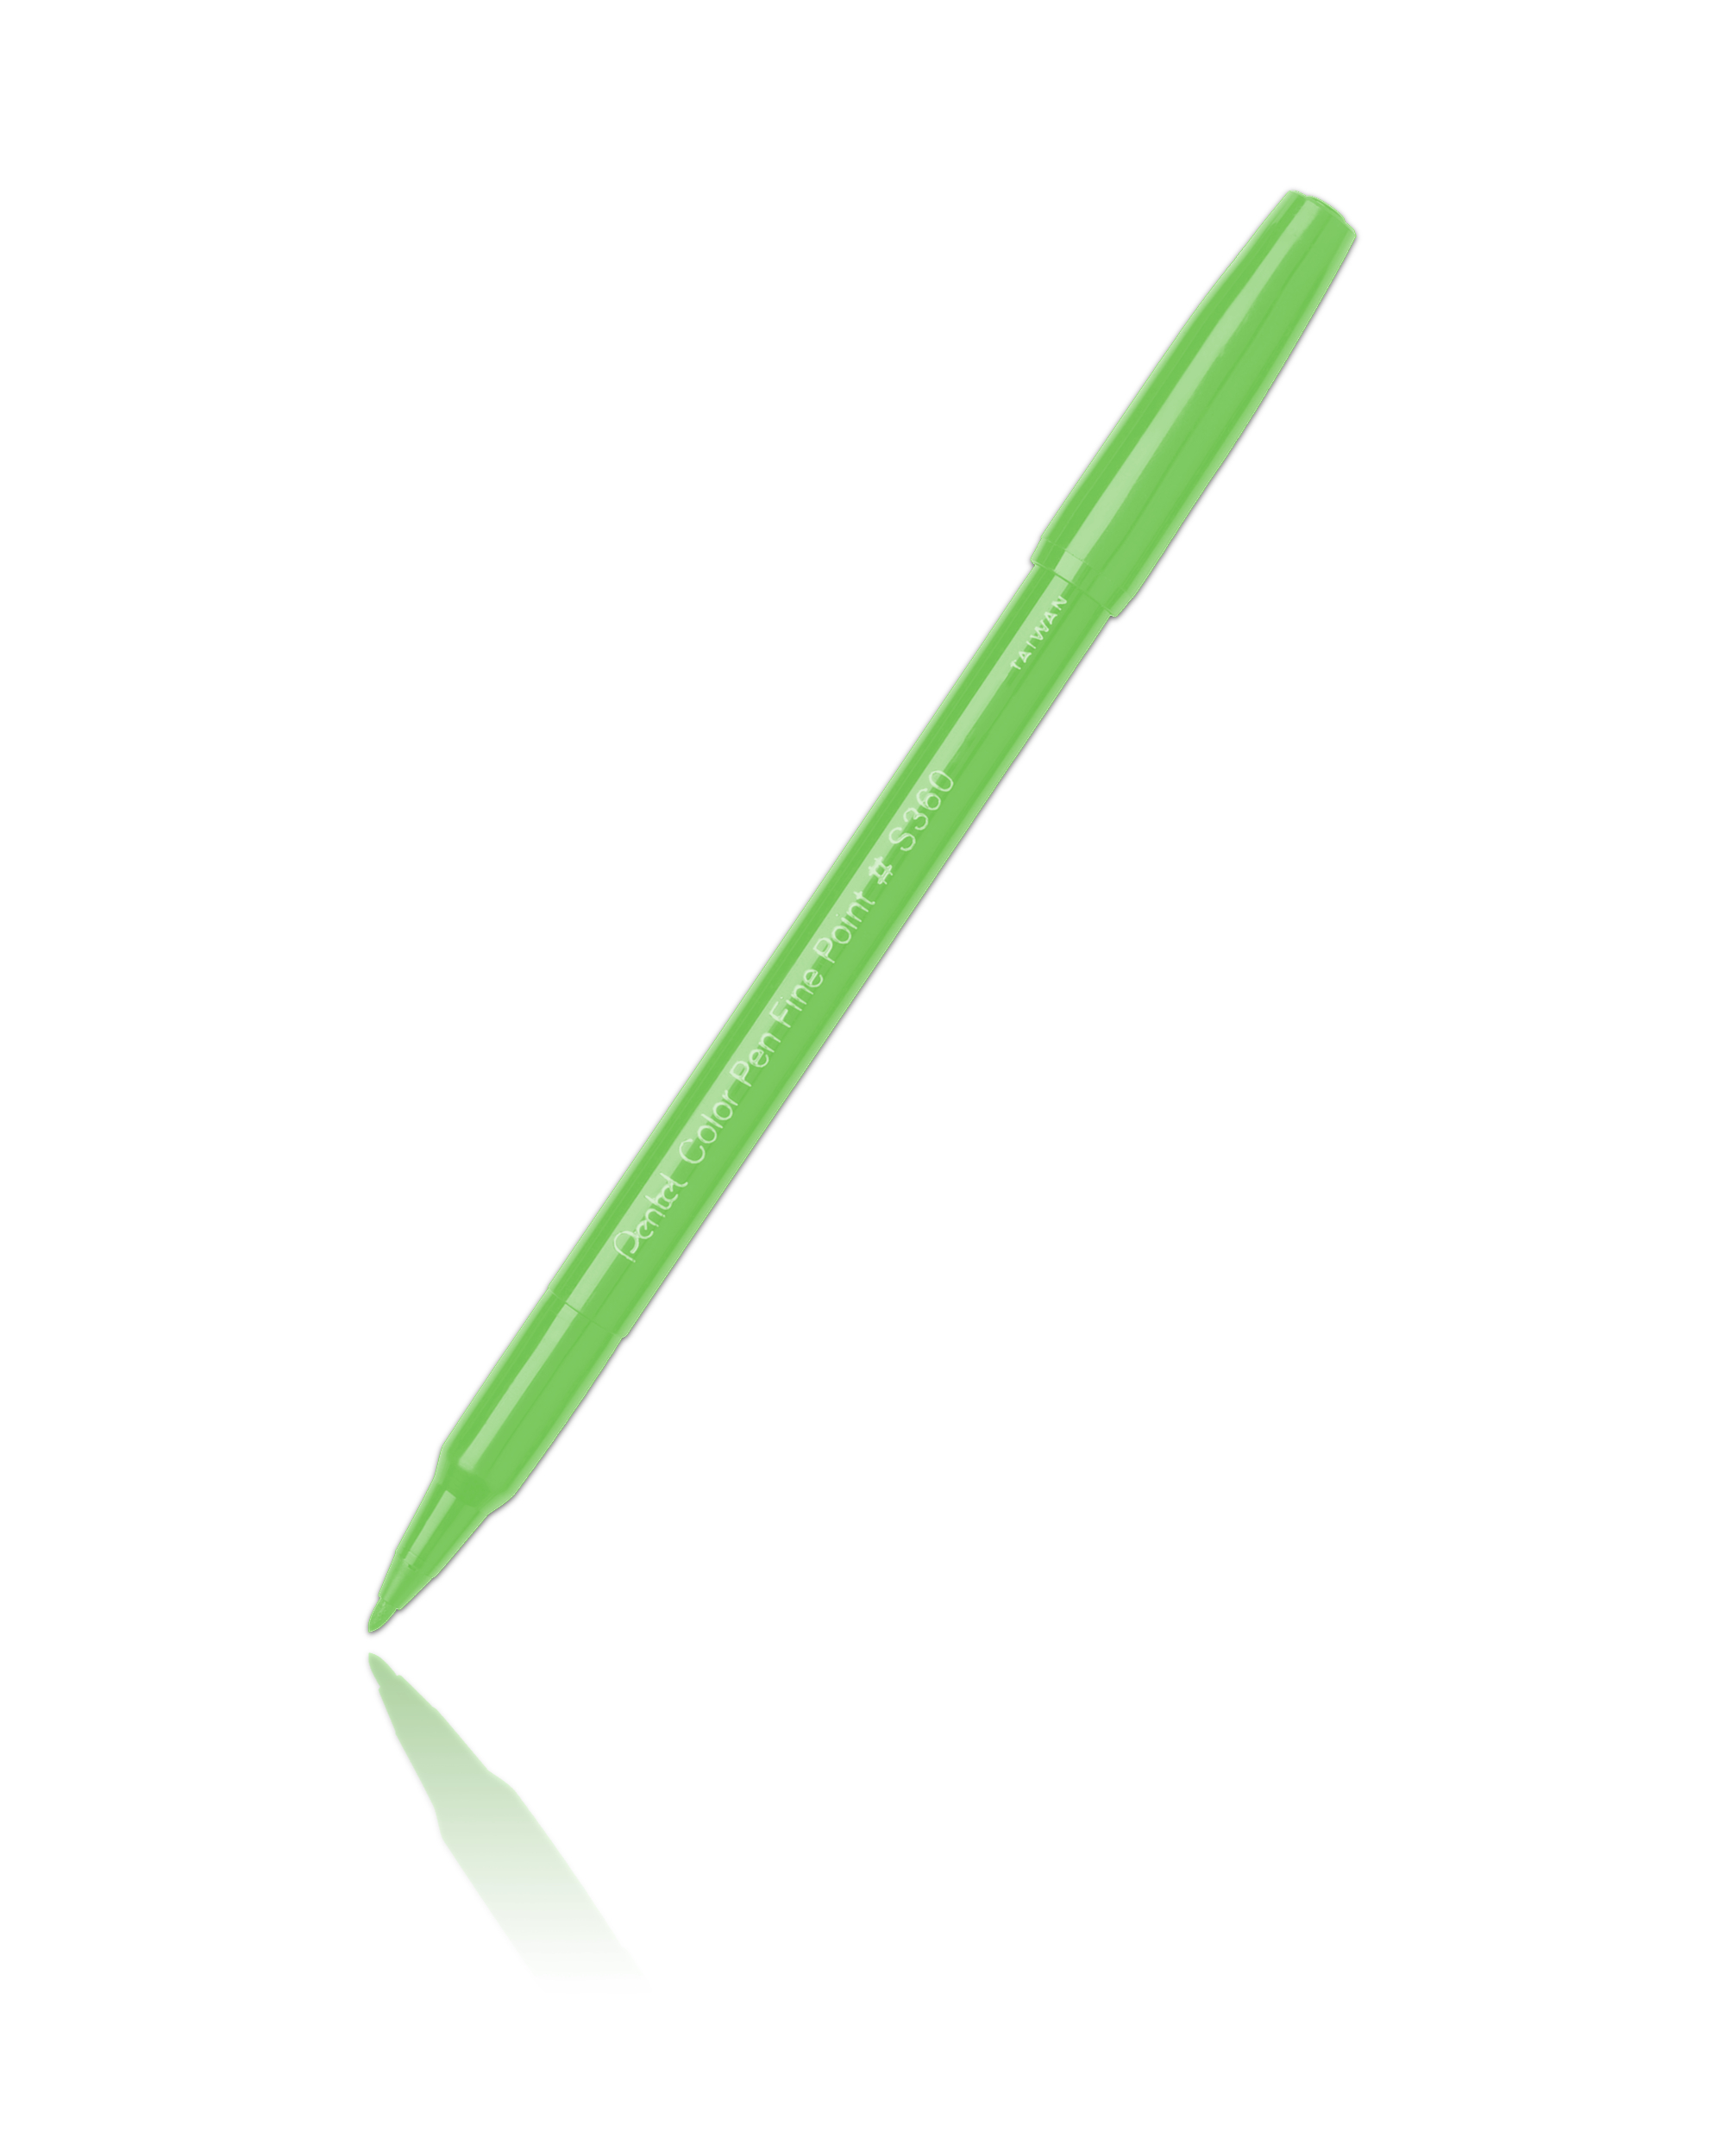 Pentel S360 Color Pen Light Green-111